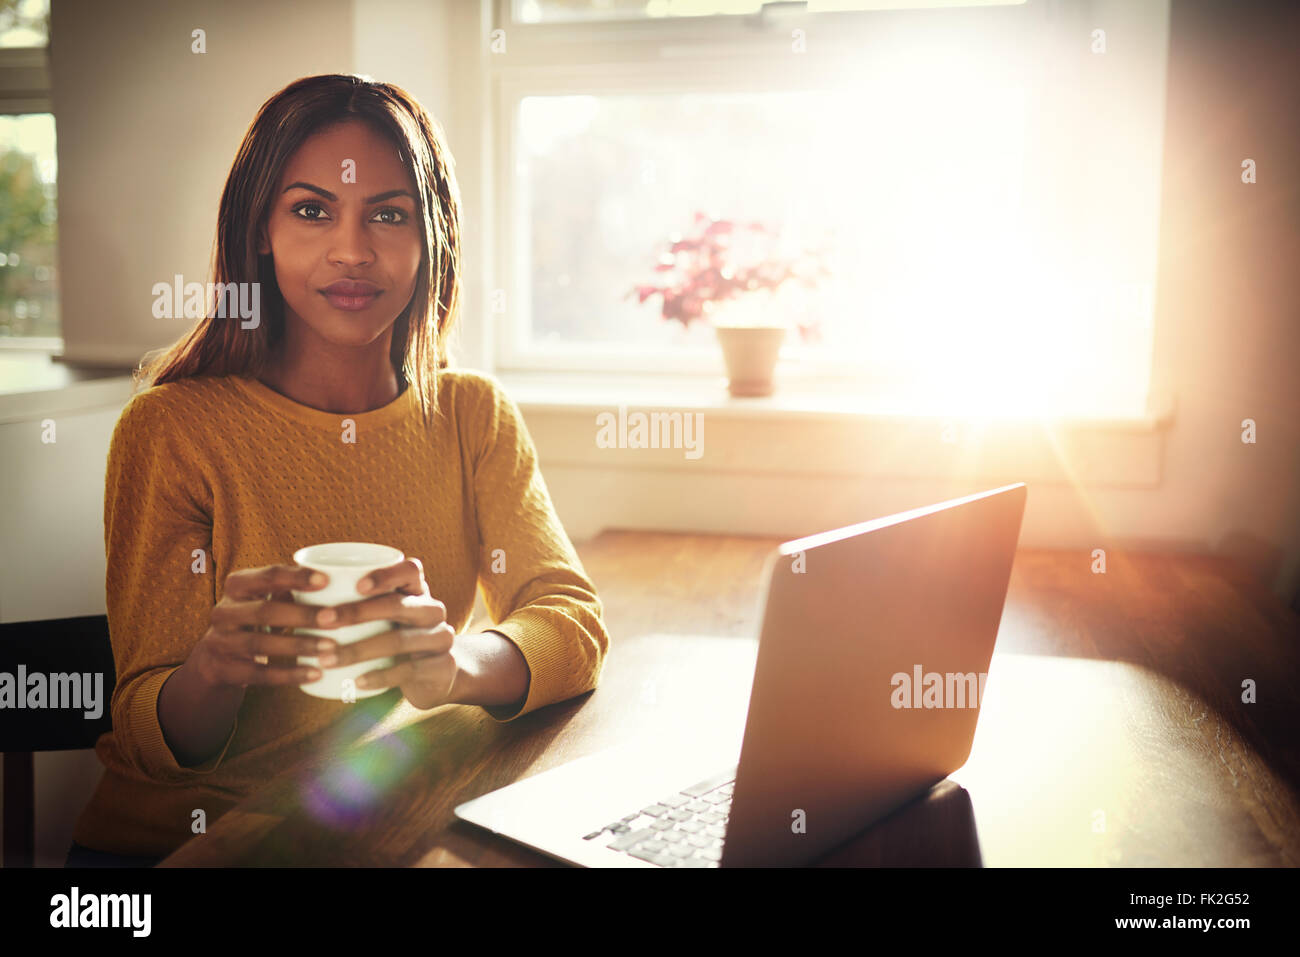 Serious young single female sitting at table holding coffee cup next to open laptop with bright sun coming through - Stock Image